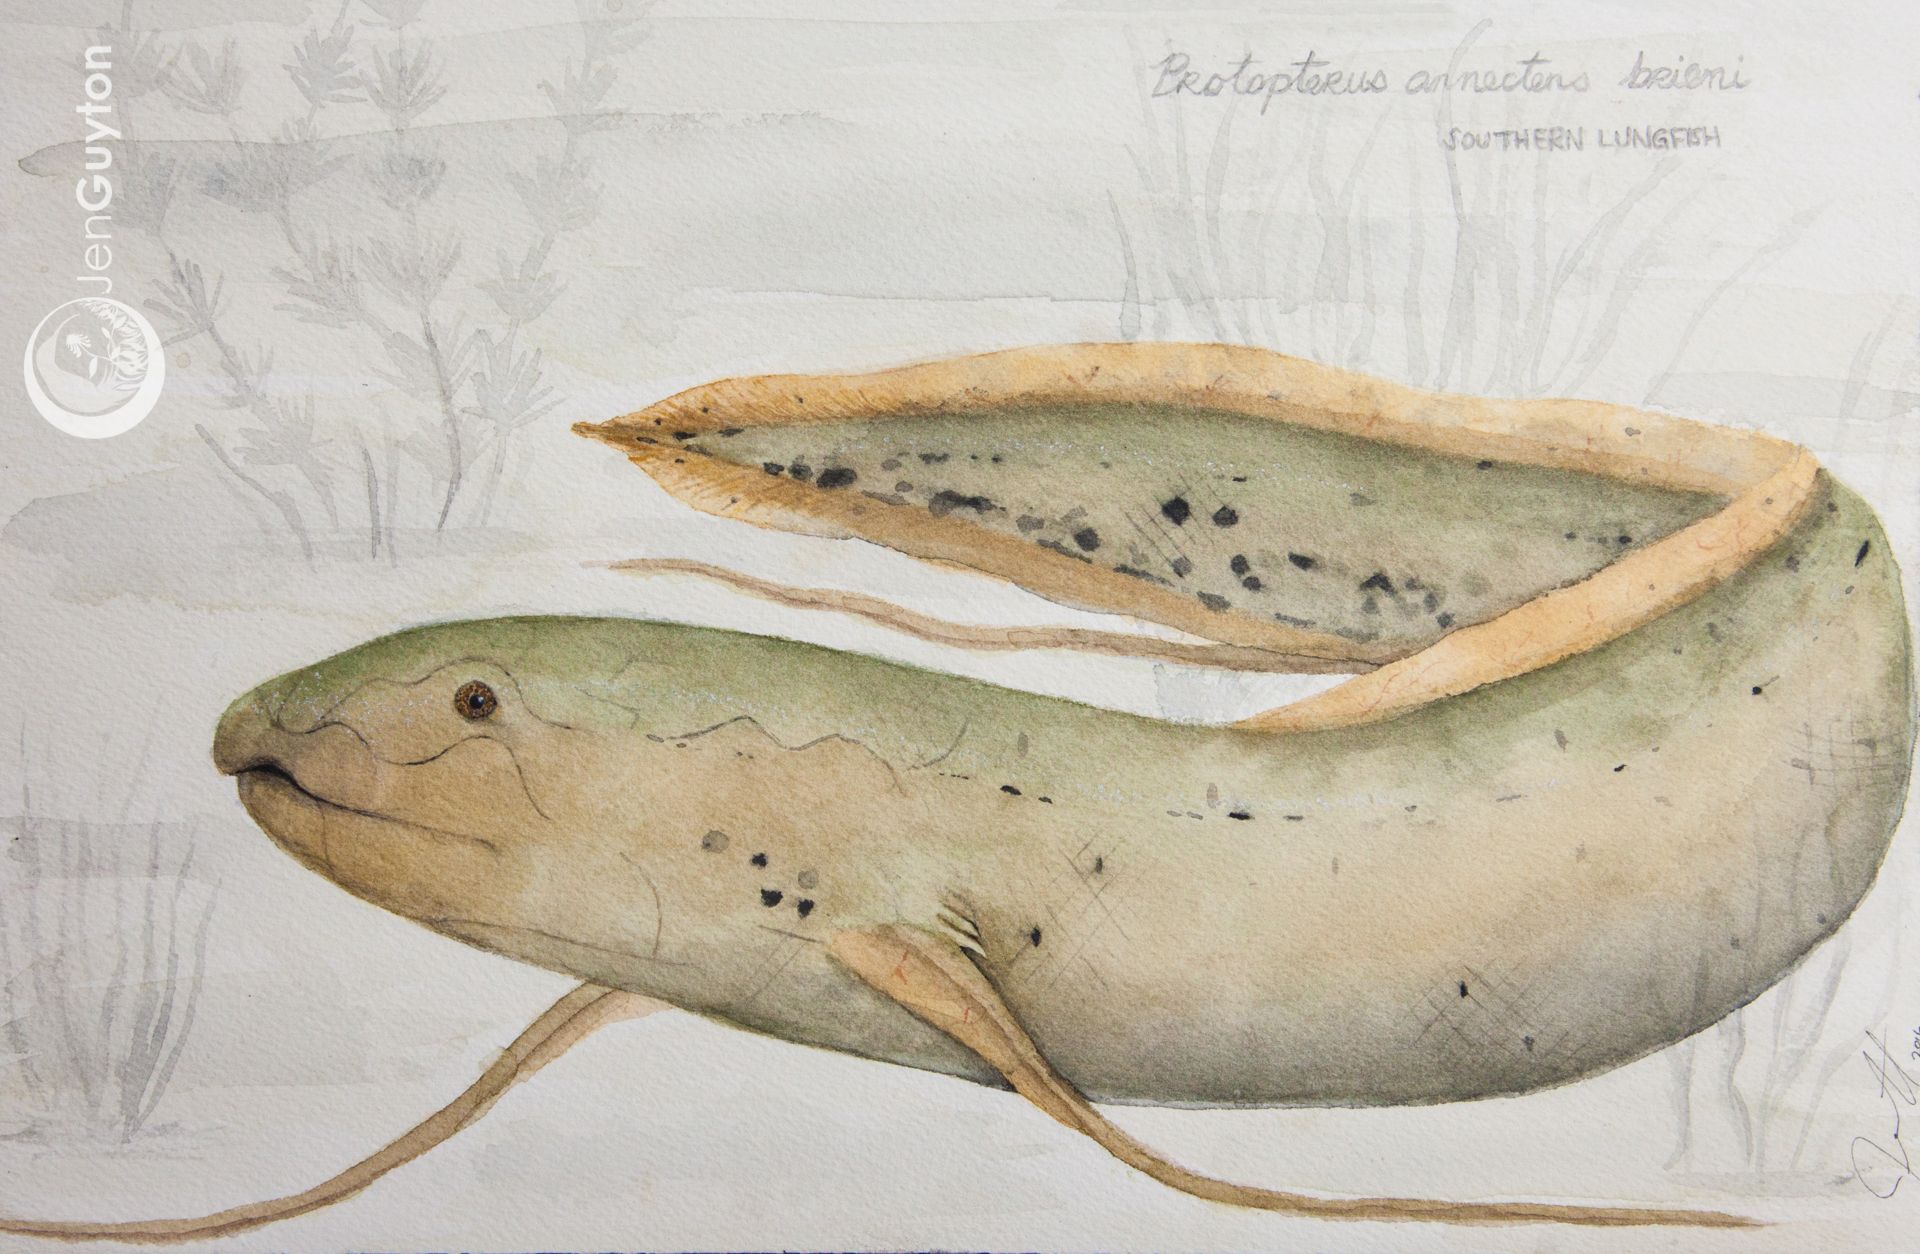 Southern Lungfish